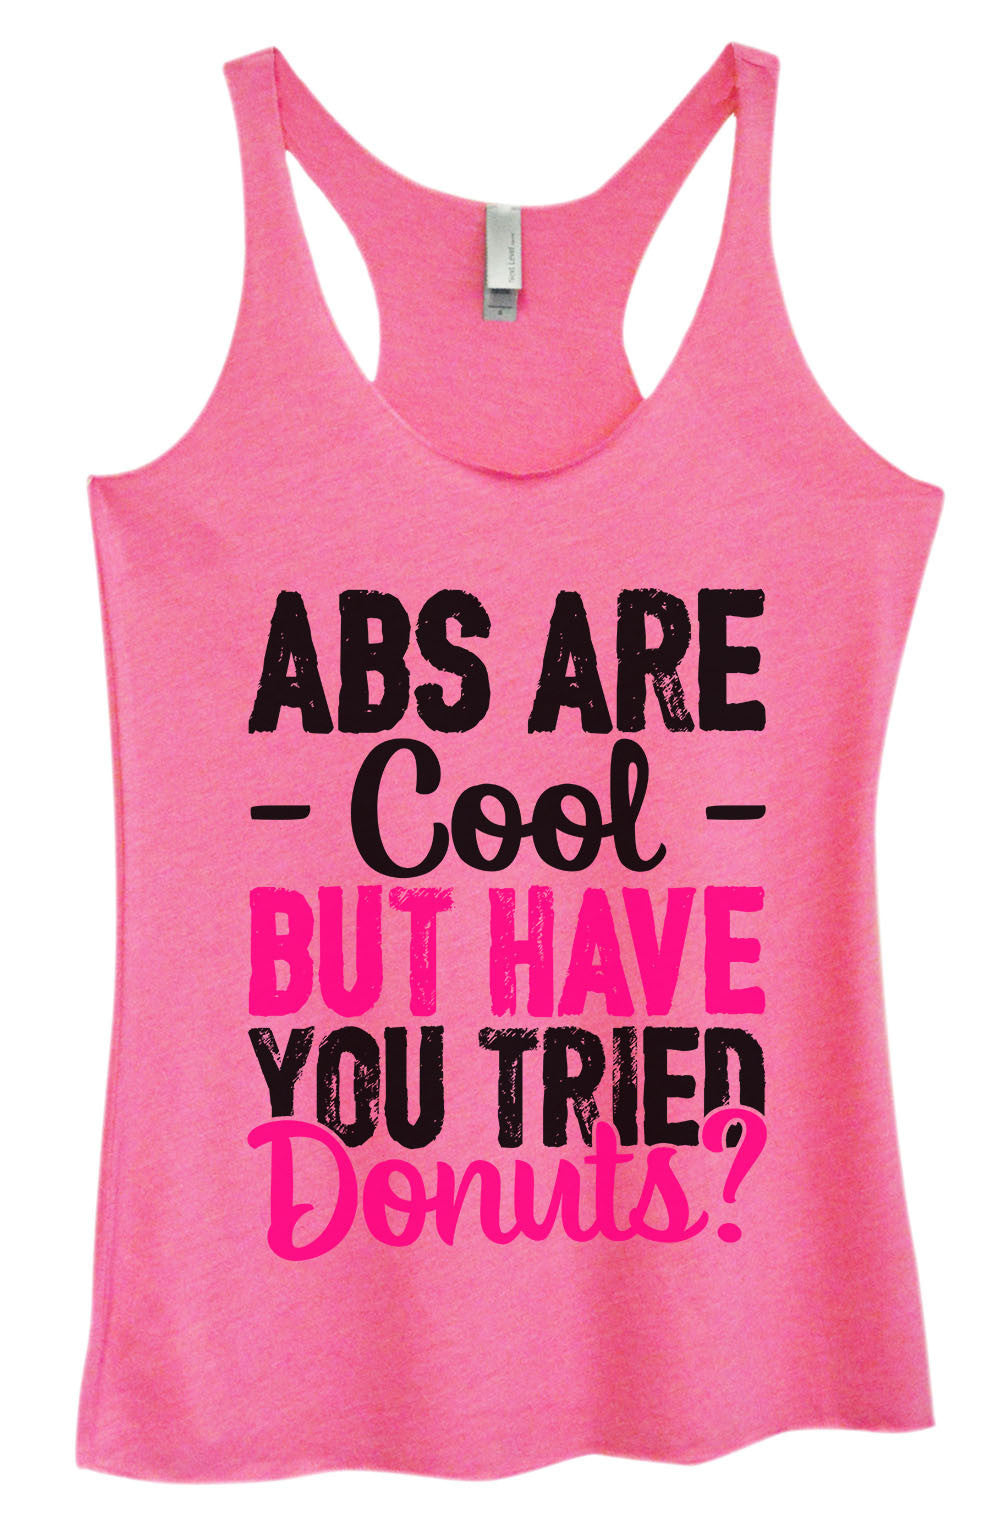 Womens Fashion Triblend Tank Top - ABS Are - Cool - But Have You Tried Donuts? - Tri-1401 - Funny Shirts Tank Tops Burnouts and Triblends  - 4